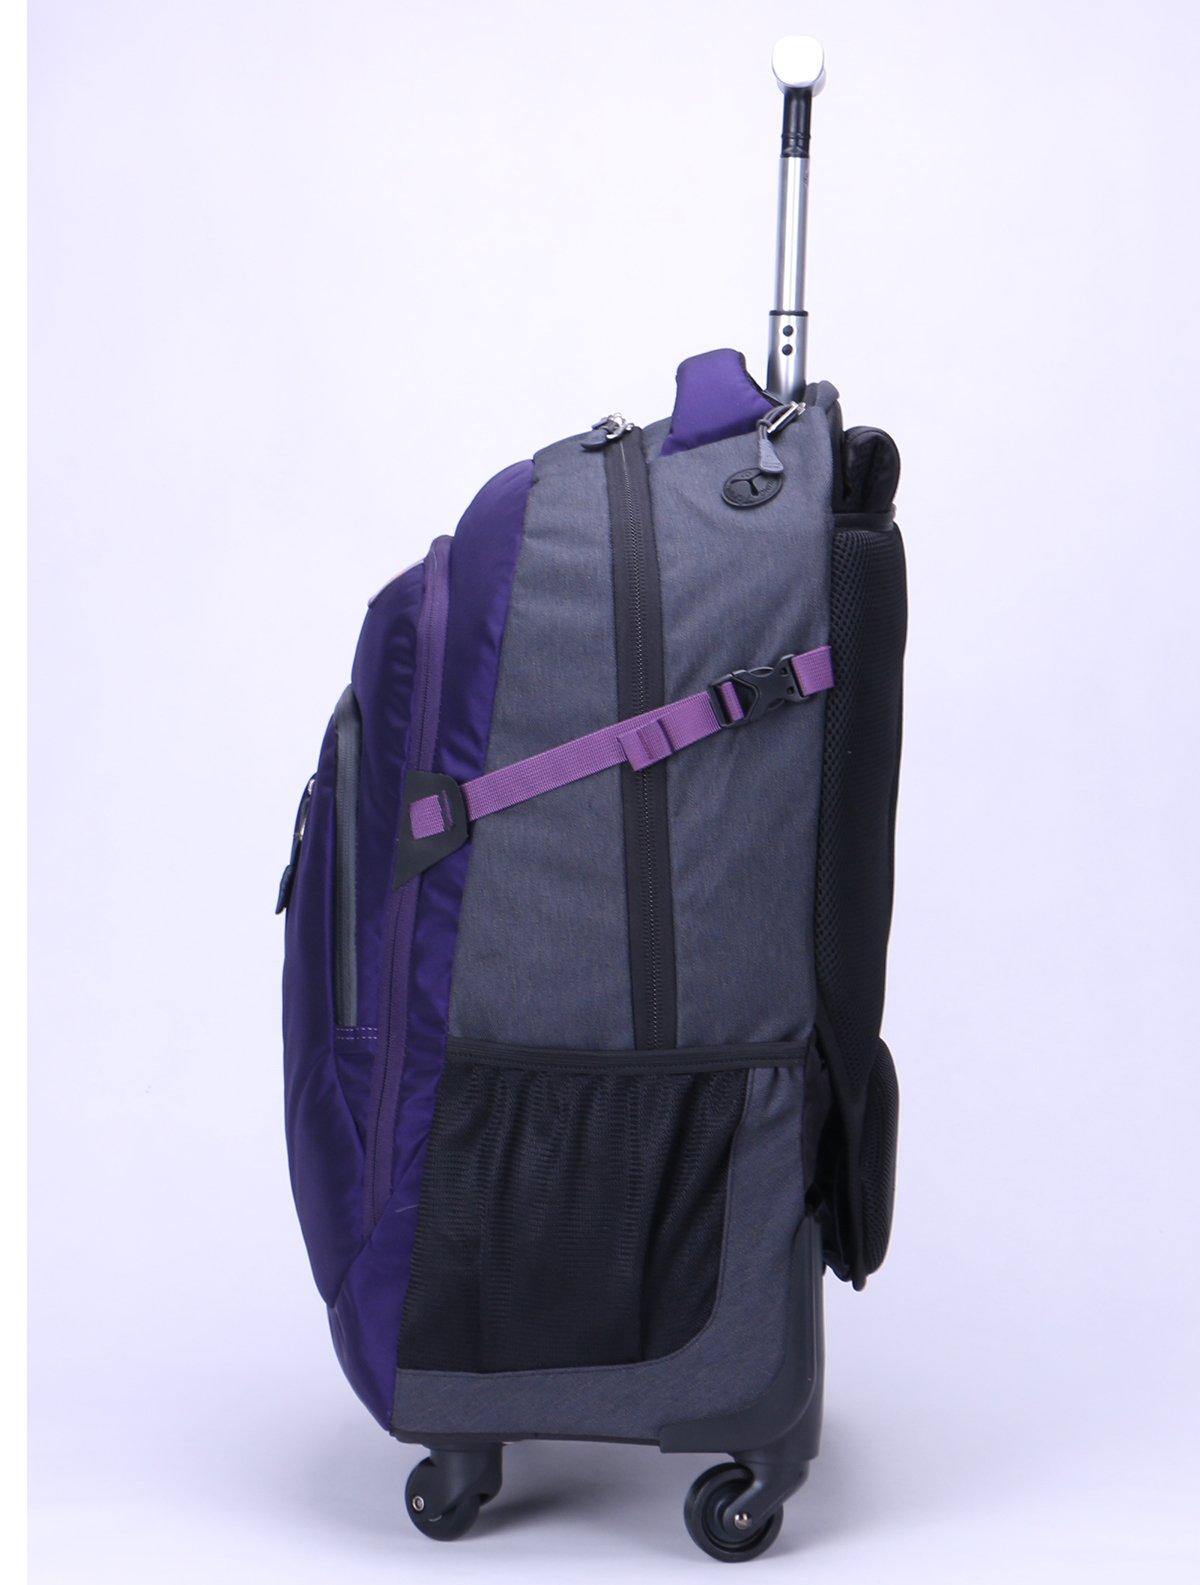 AOKING 20/22 Inch Water Resistant Travel School Business Rolling Wheeled Backpack with Laptop Compartment (Purple, 20 Inch) by JOLLYCHIC (Image #3)